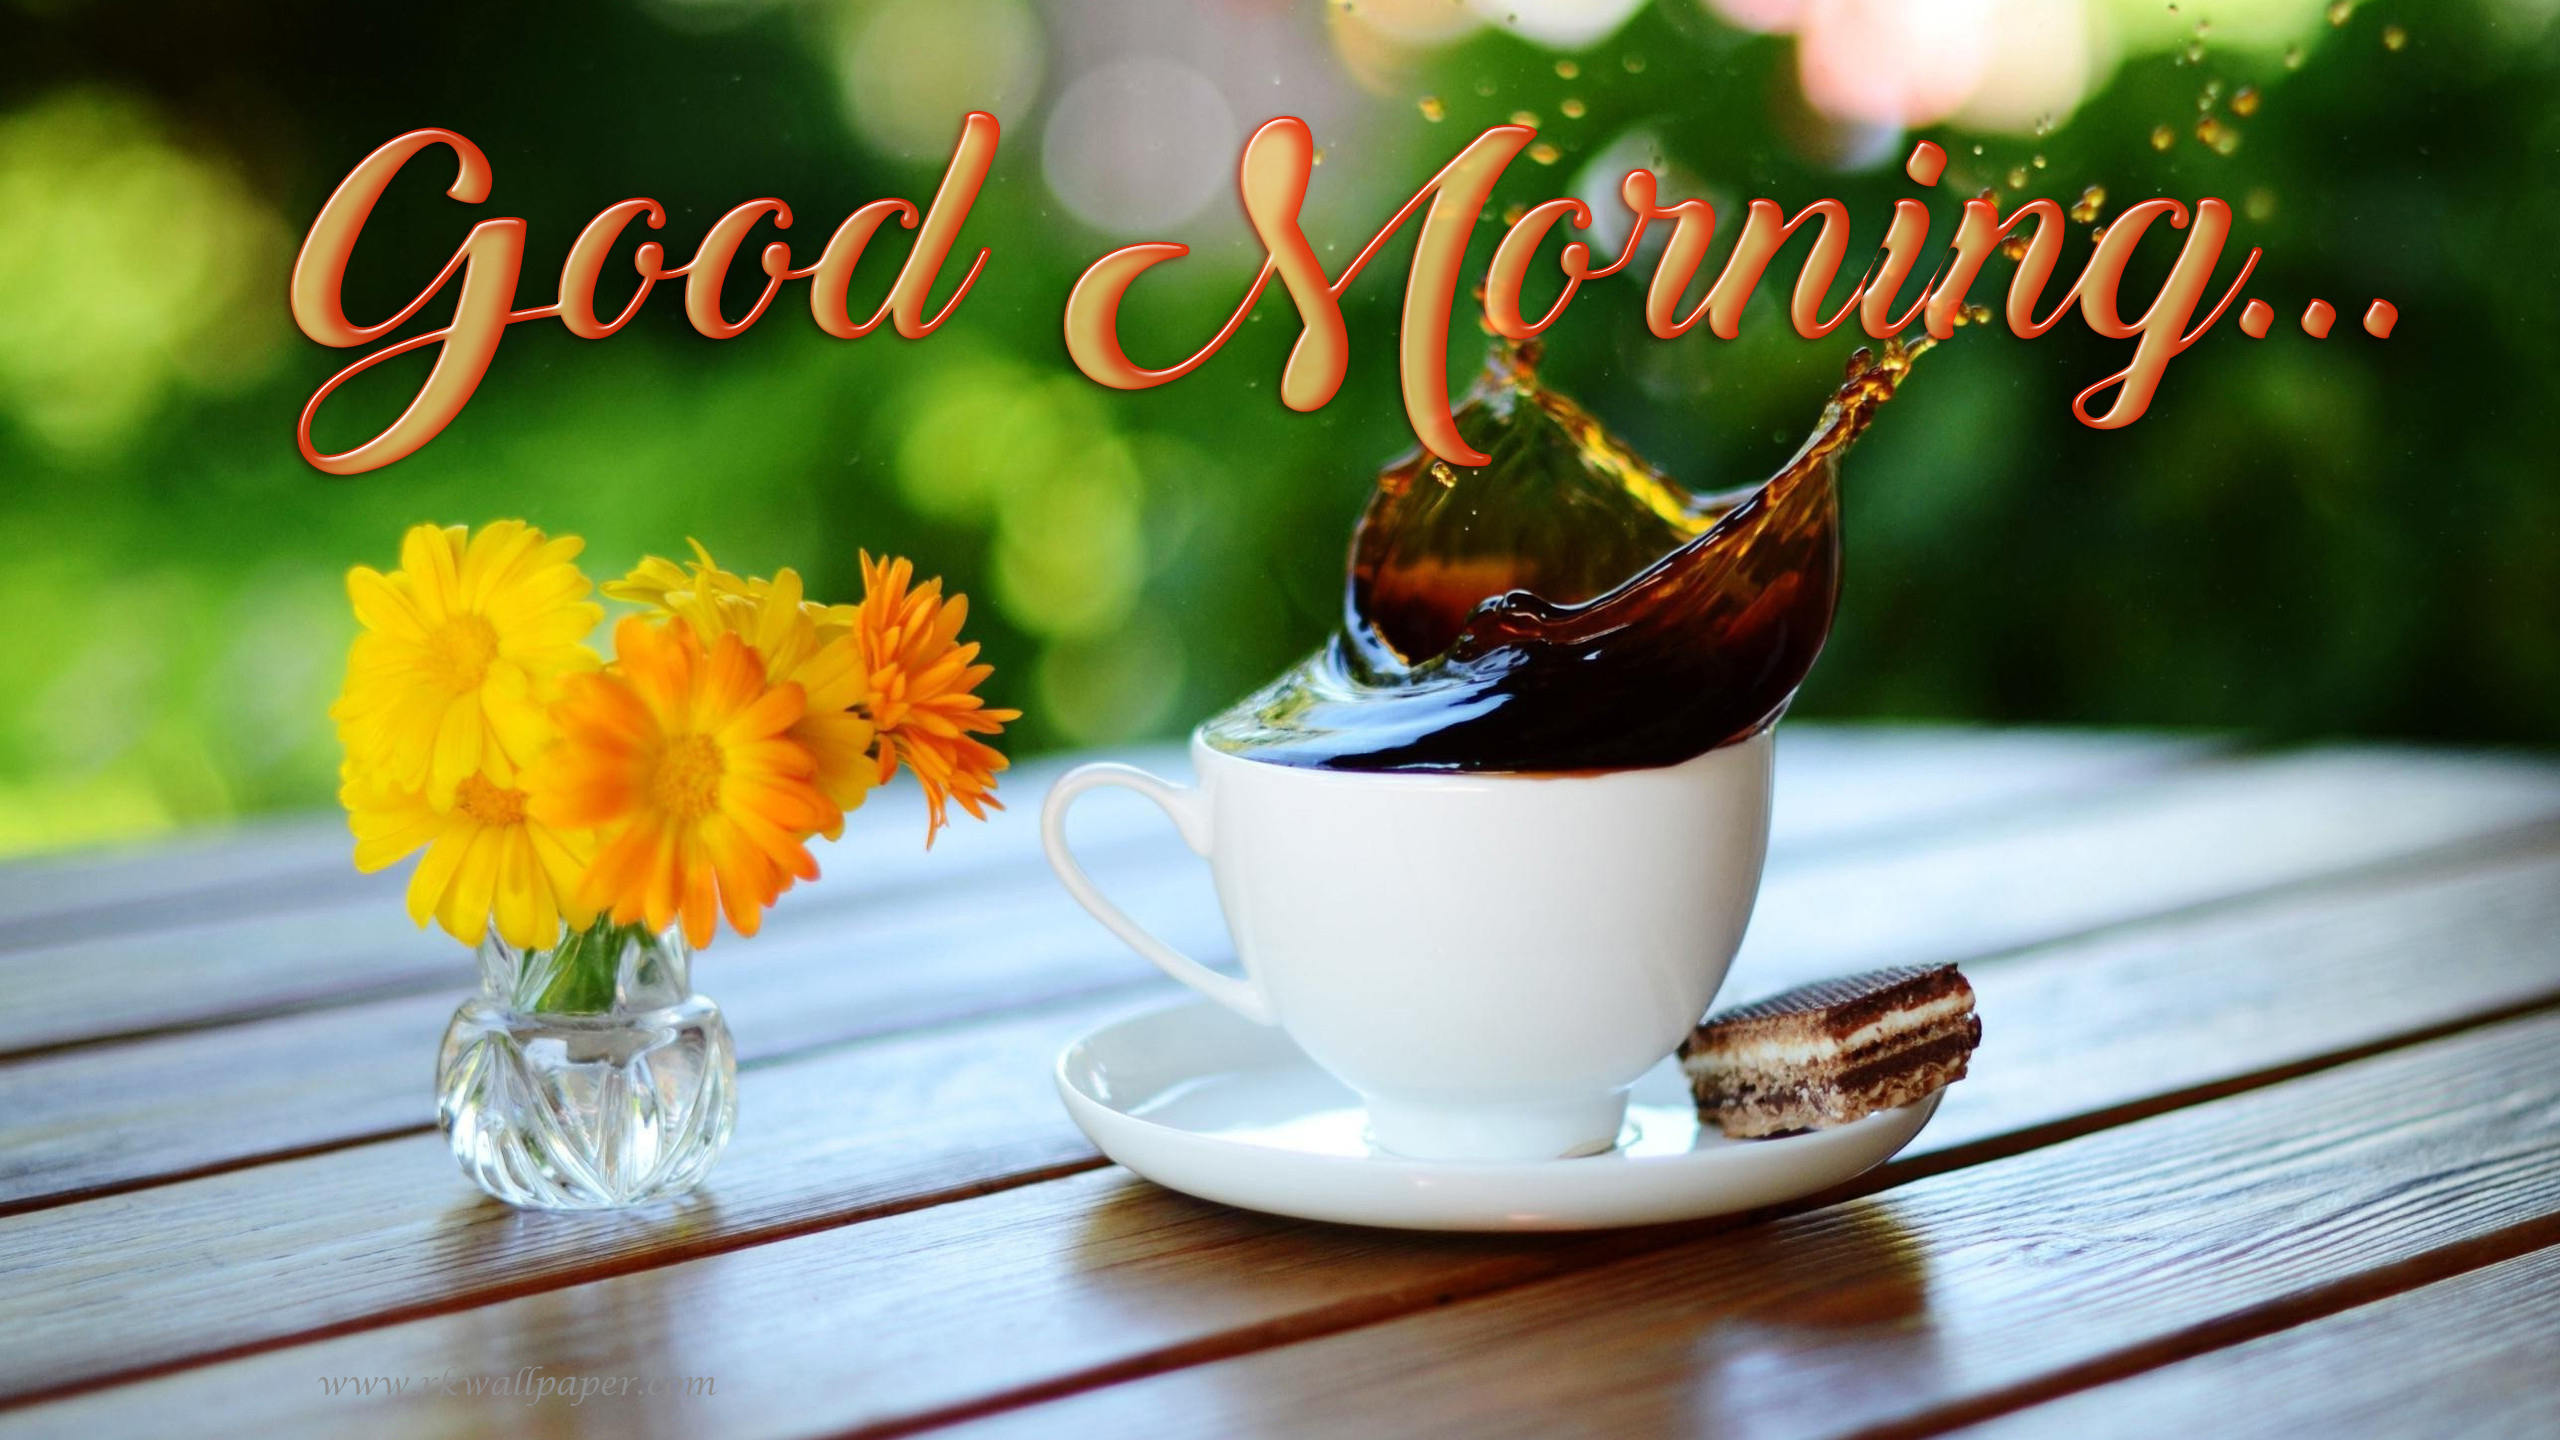 80+ Positive and Inspiring Good Morning Wishes, Quotes